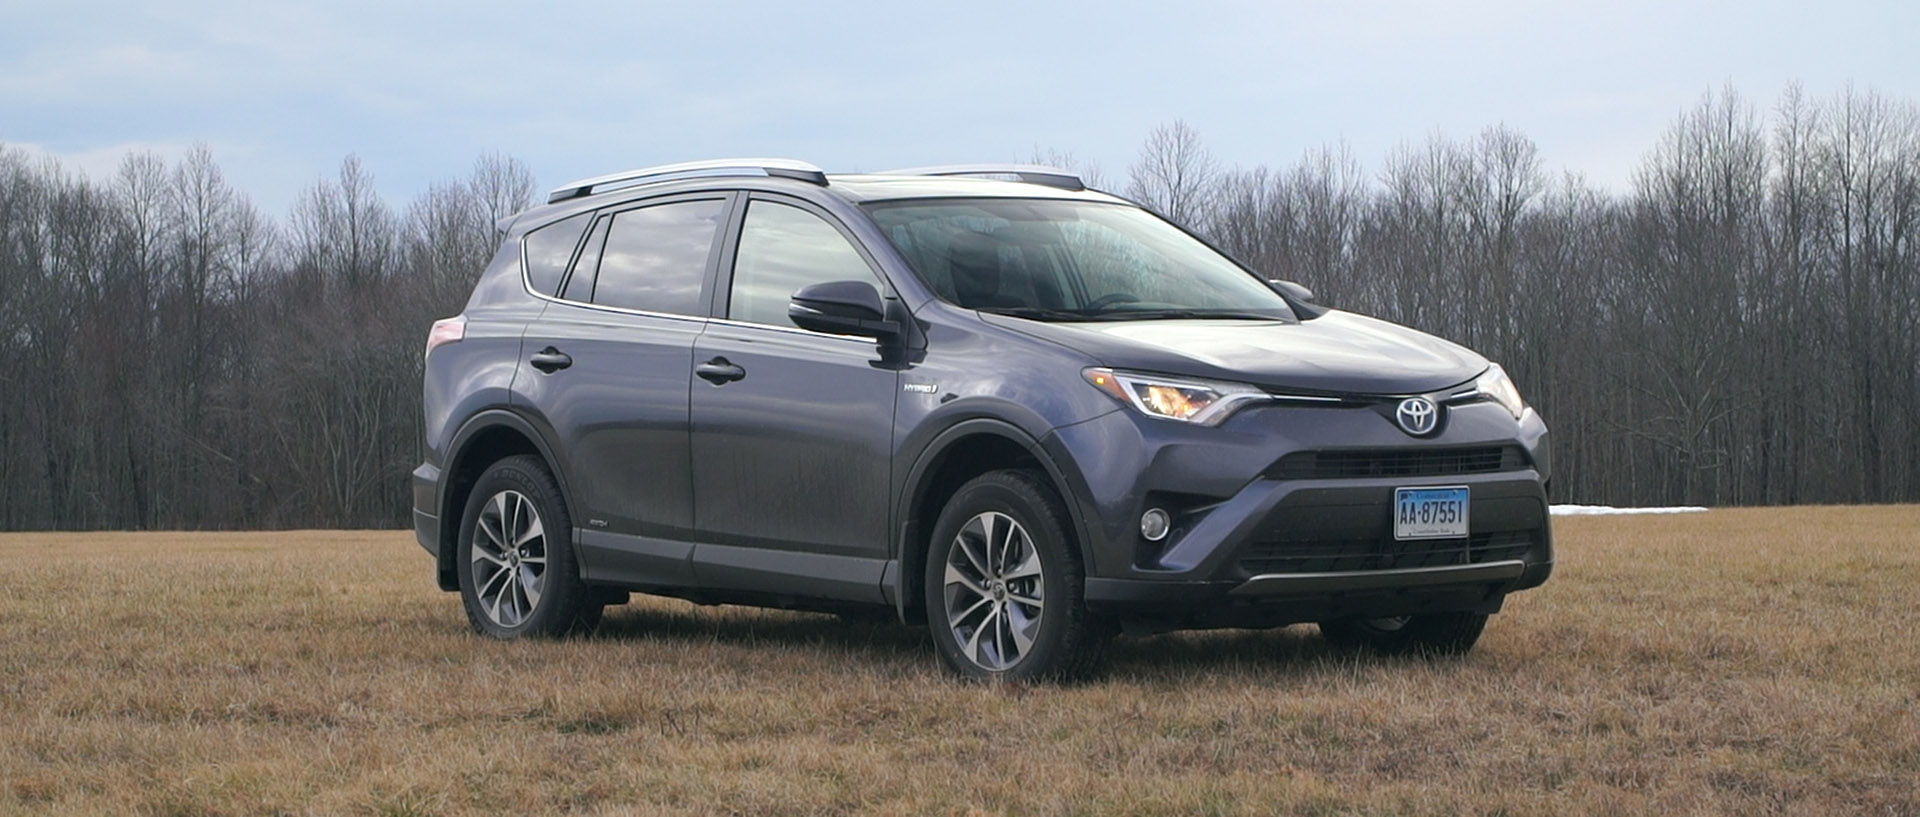 Most Reliable Used Trucks >> 2016 Toyota RAV4 Hybrid Is a Challenger - Consumer Reports